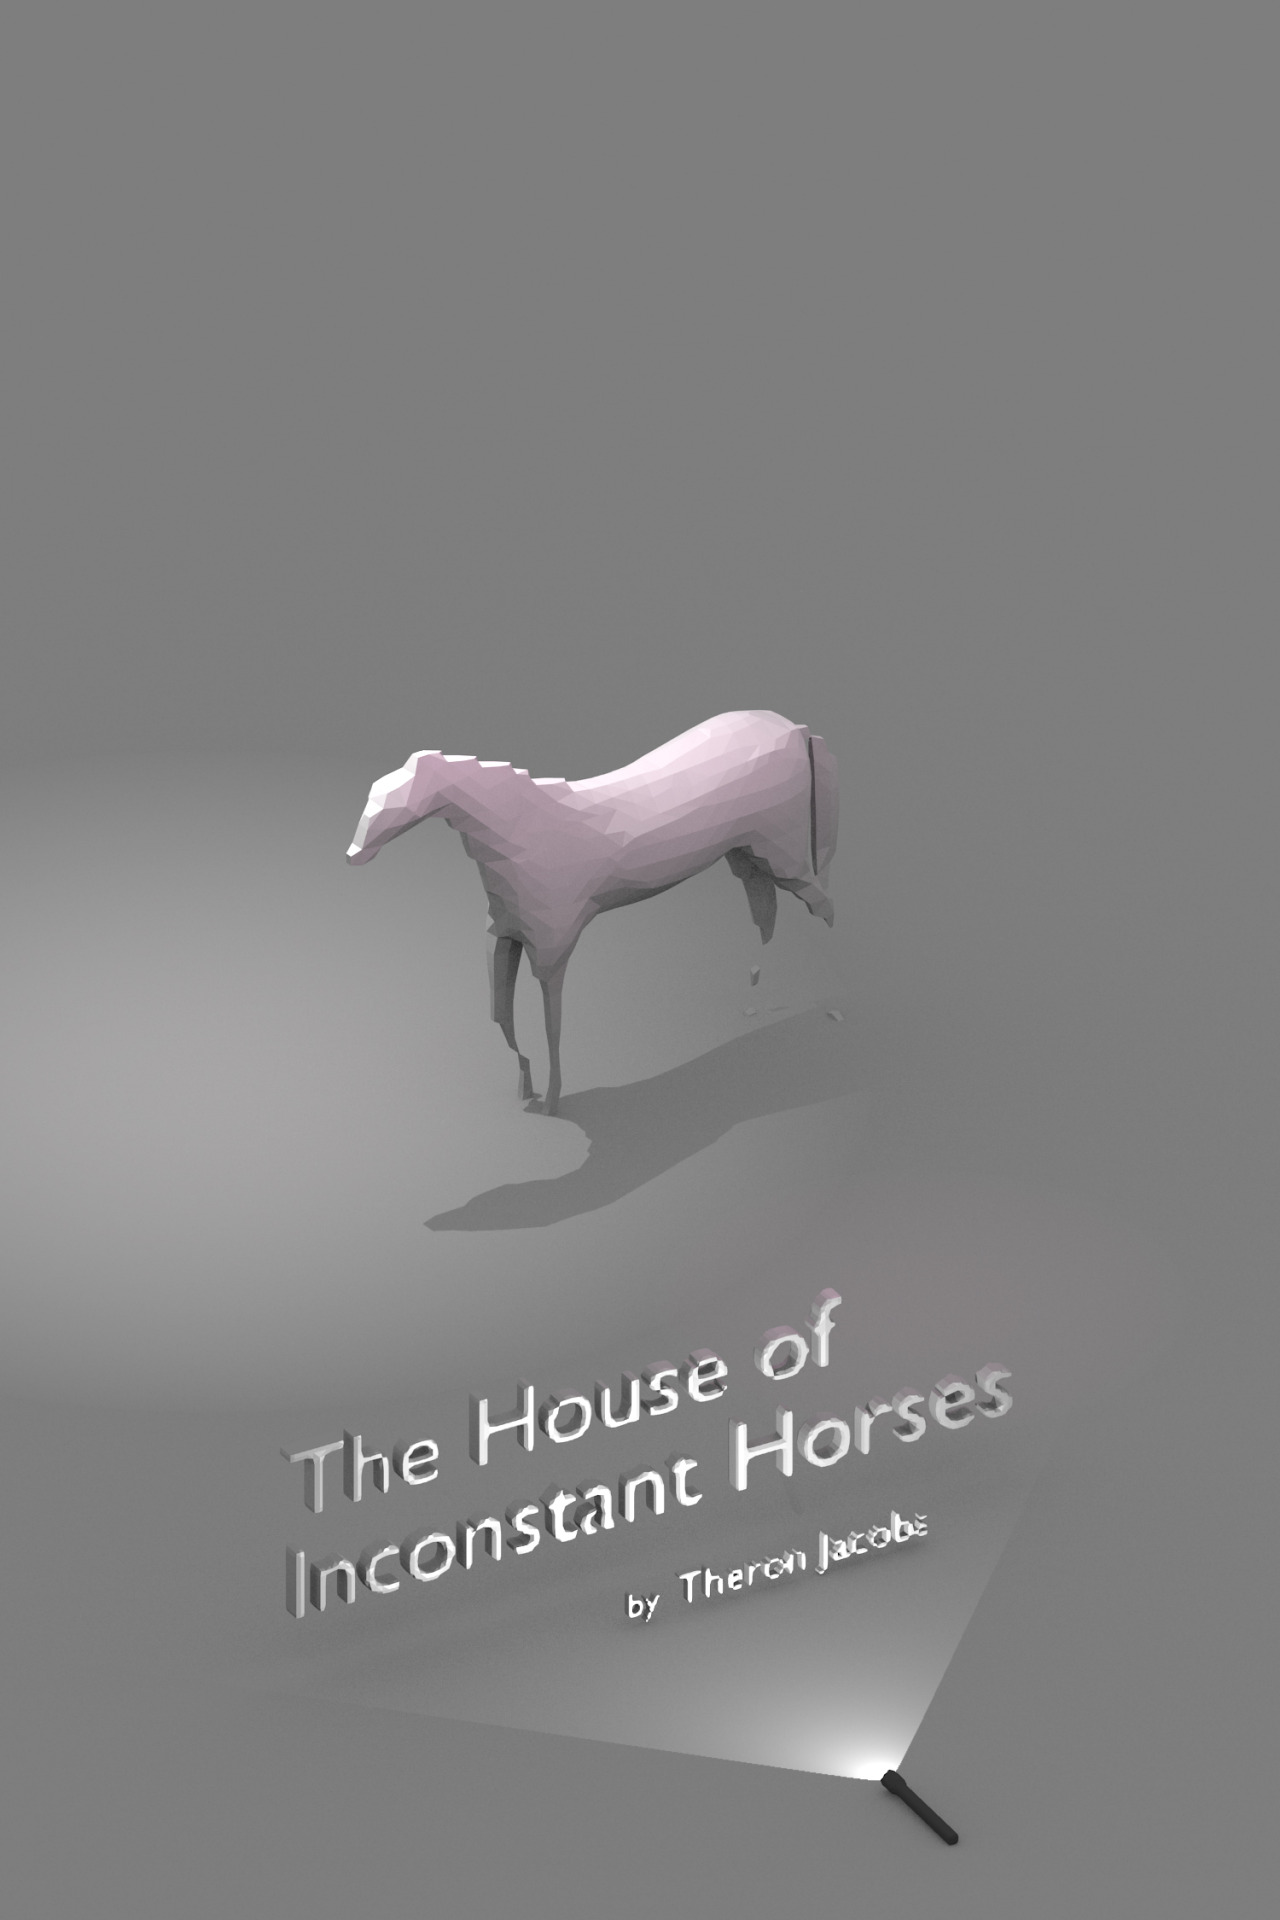 Cover art of The House of Inconstant Horses, by Theron Jacobs